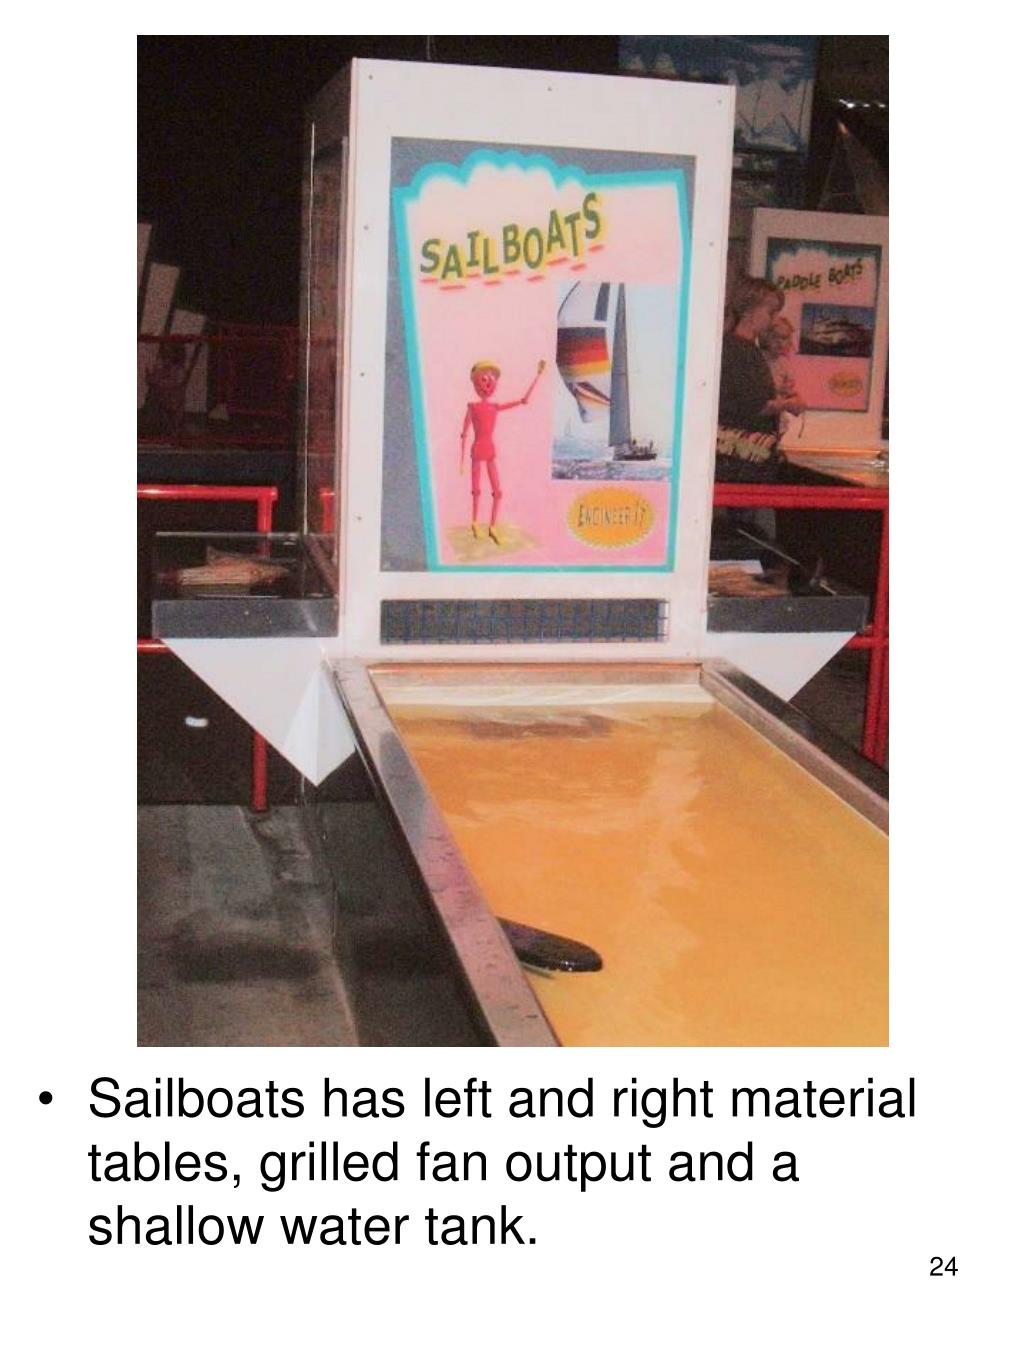 Sailboats has left and right material tables, grilled fan output and a shallow water tank.